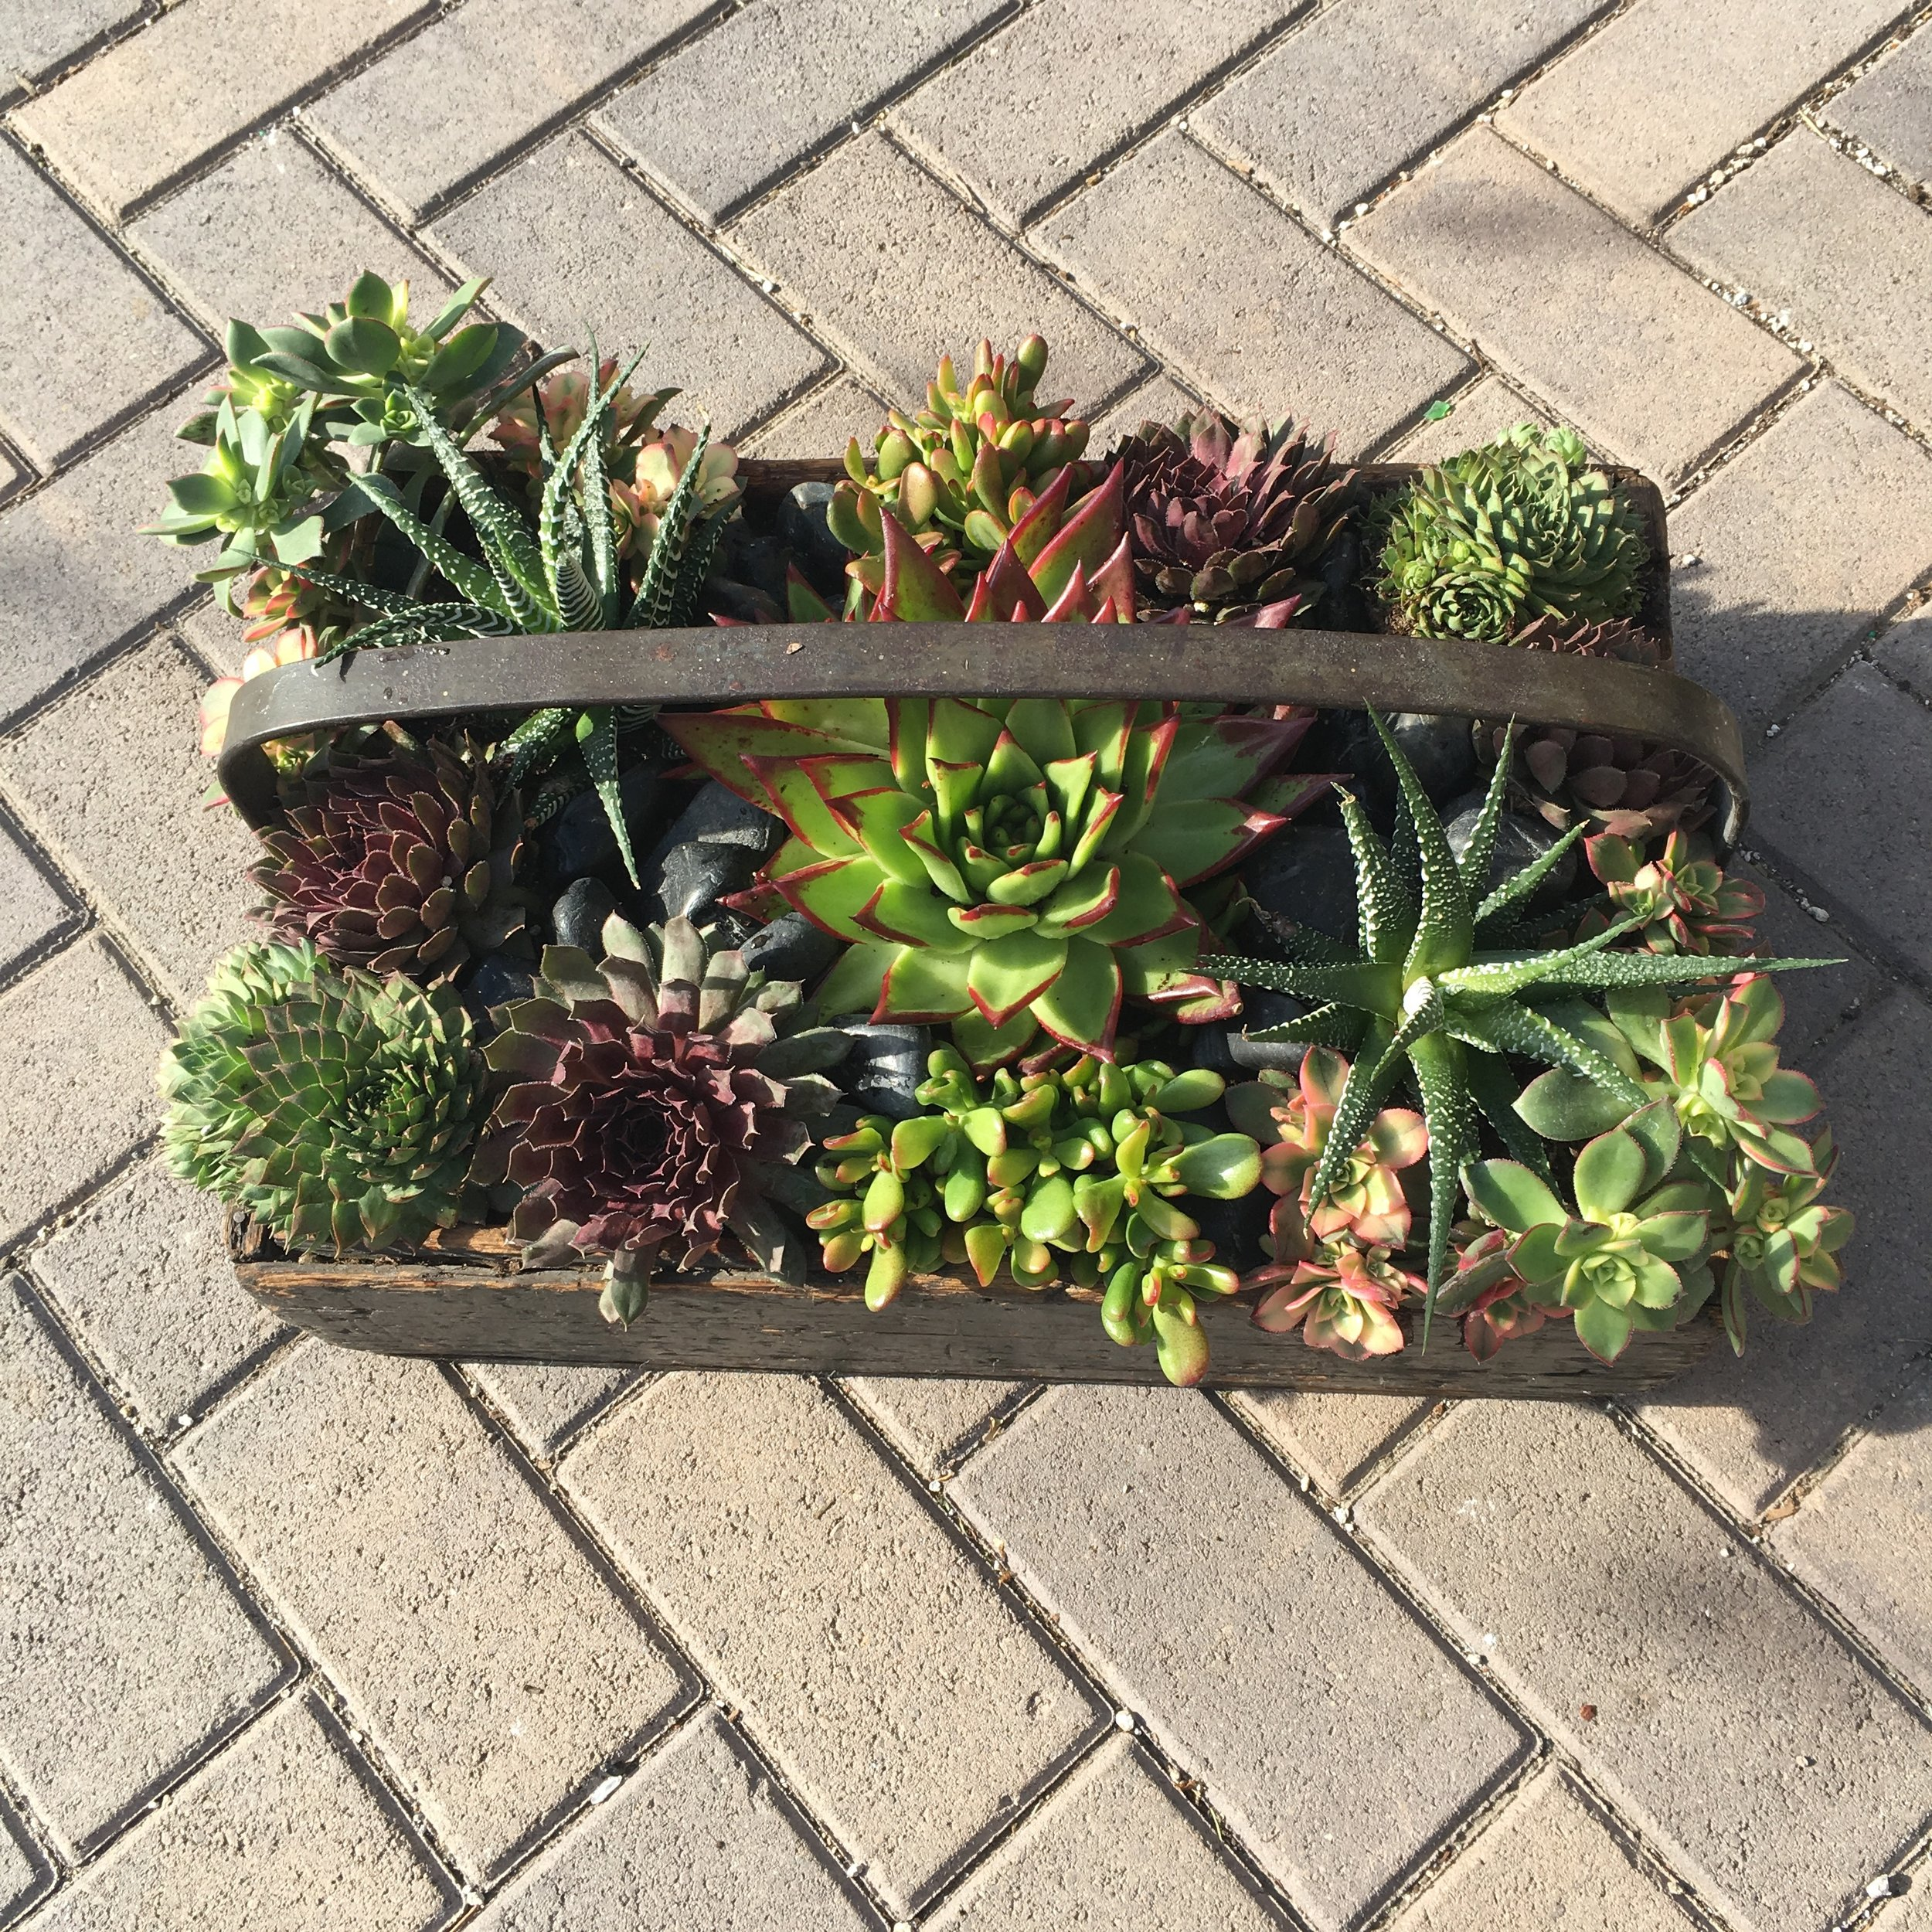 10. Antique Wooden Box Succulent Arrangement